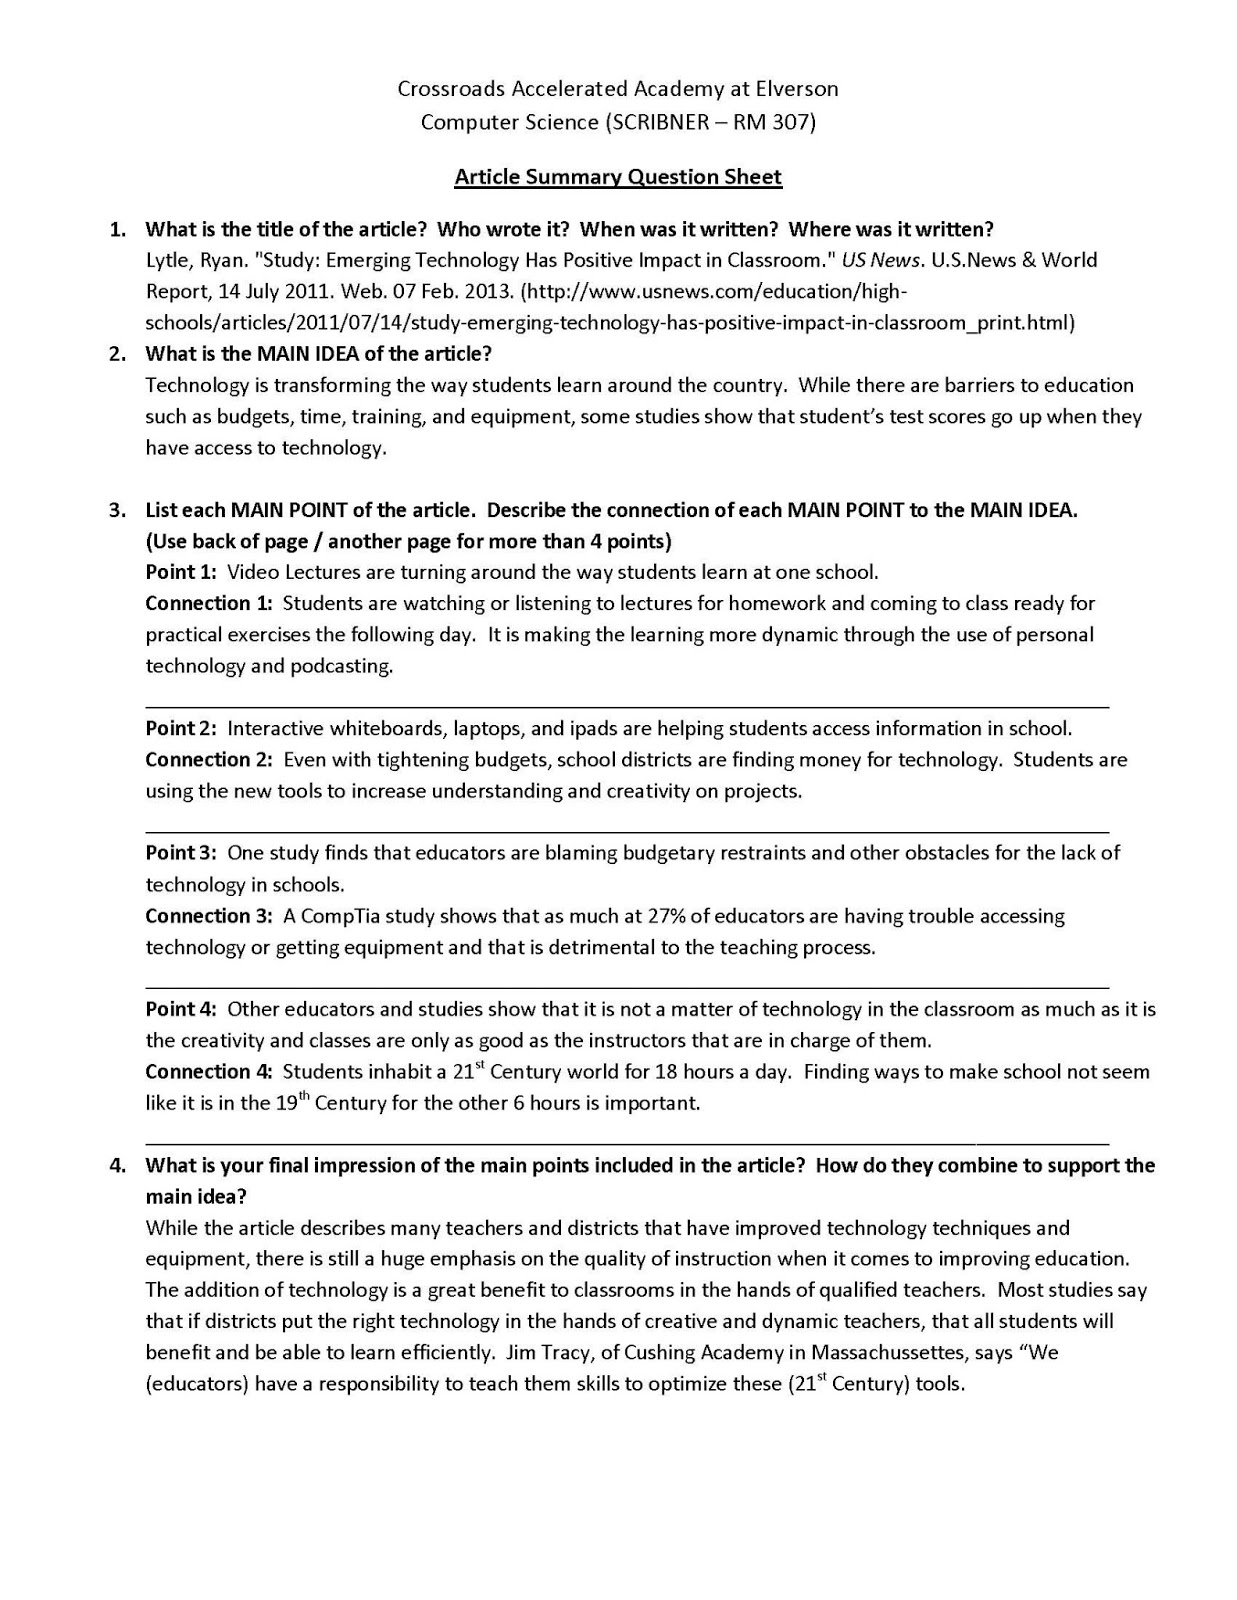 Collegium charter school technology blog mla format for Science article summary template